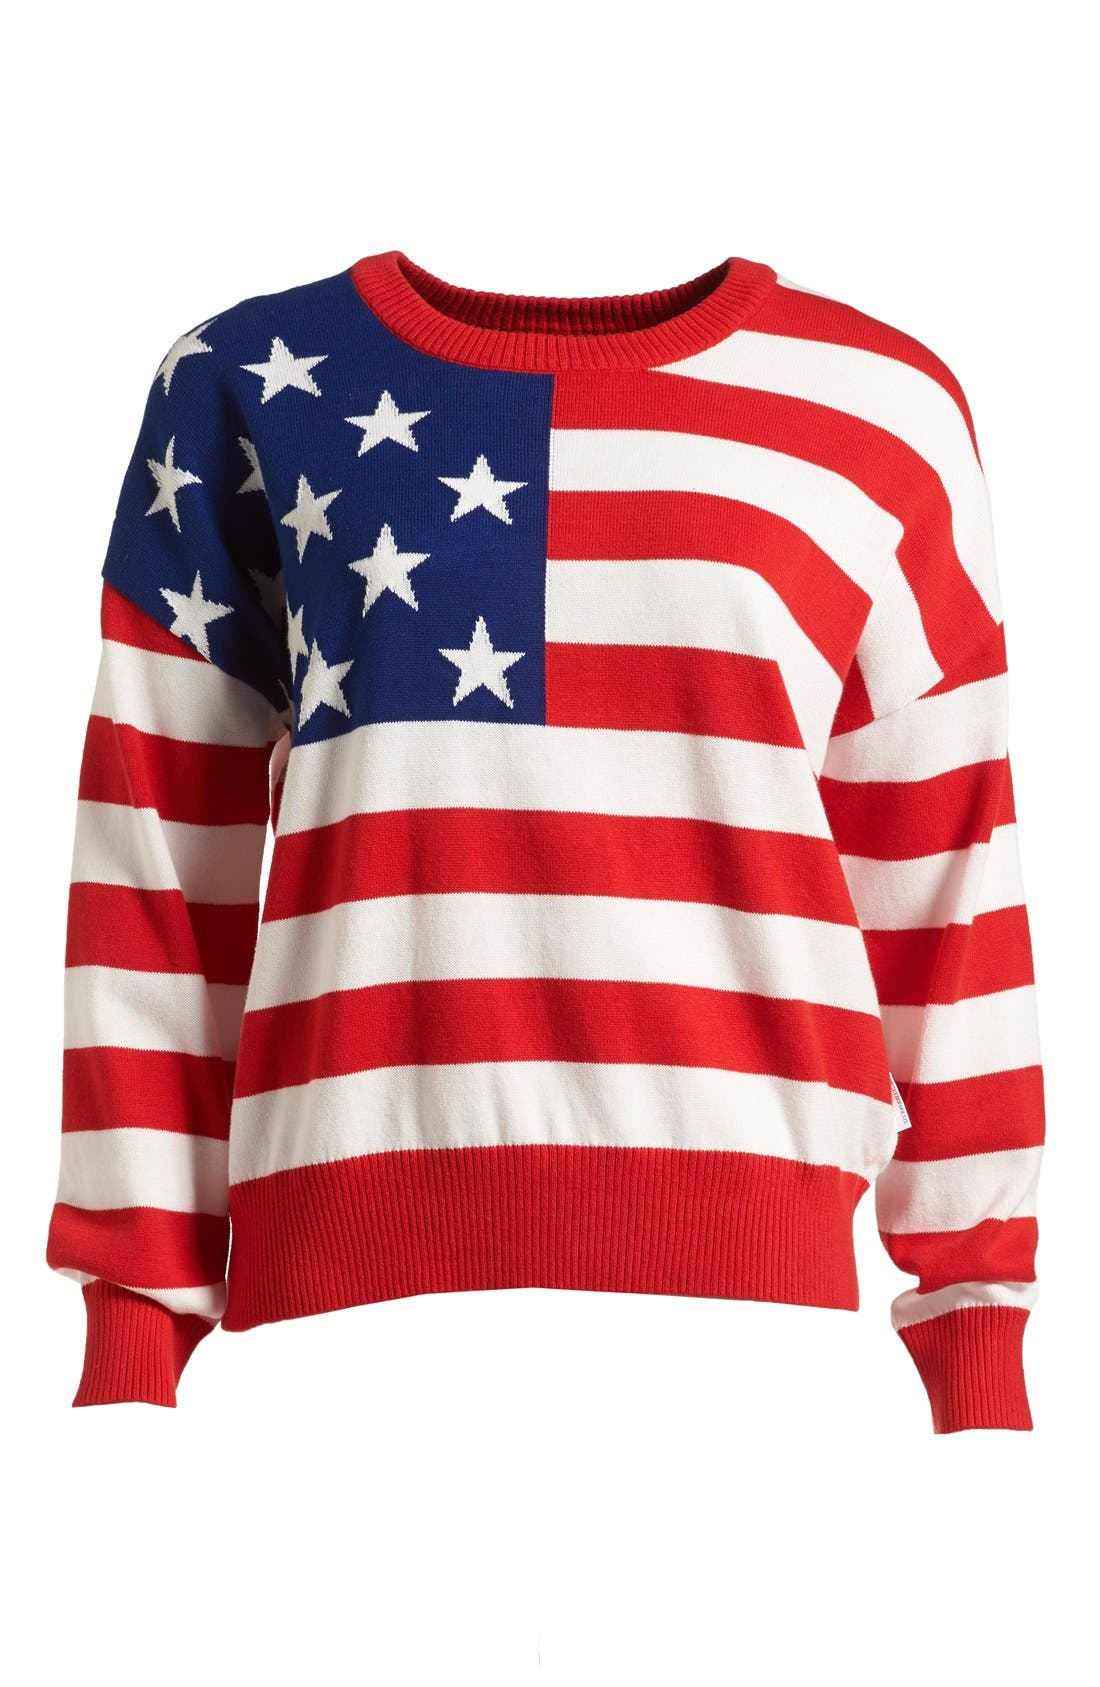 Main Image - :CHOCOOLATE US Flag Knit Sweater (Women)